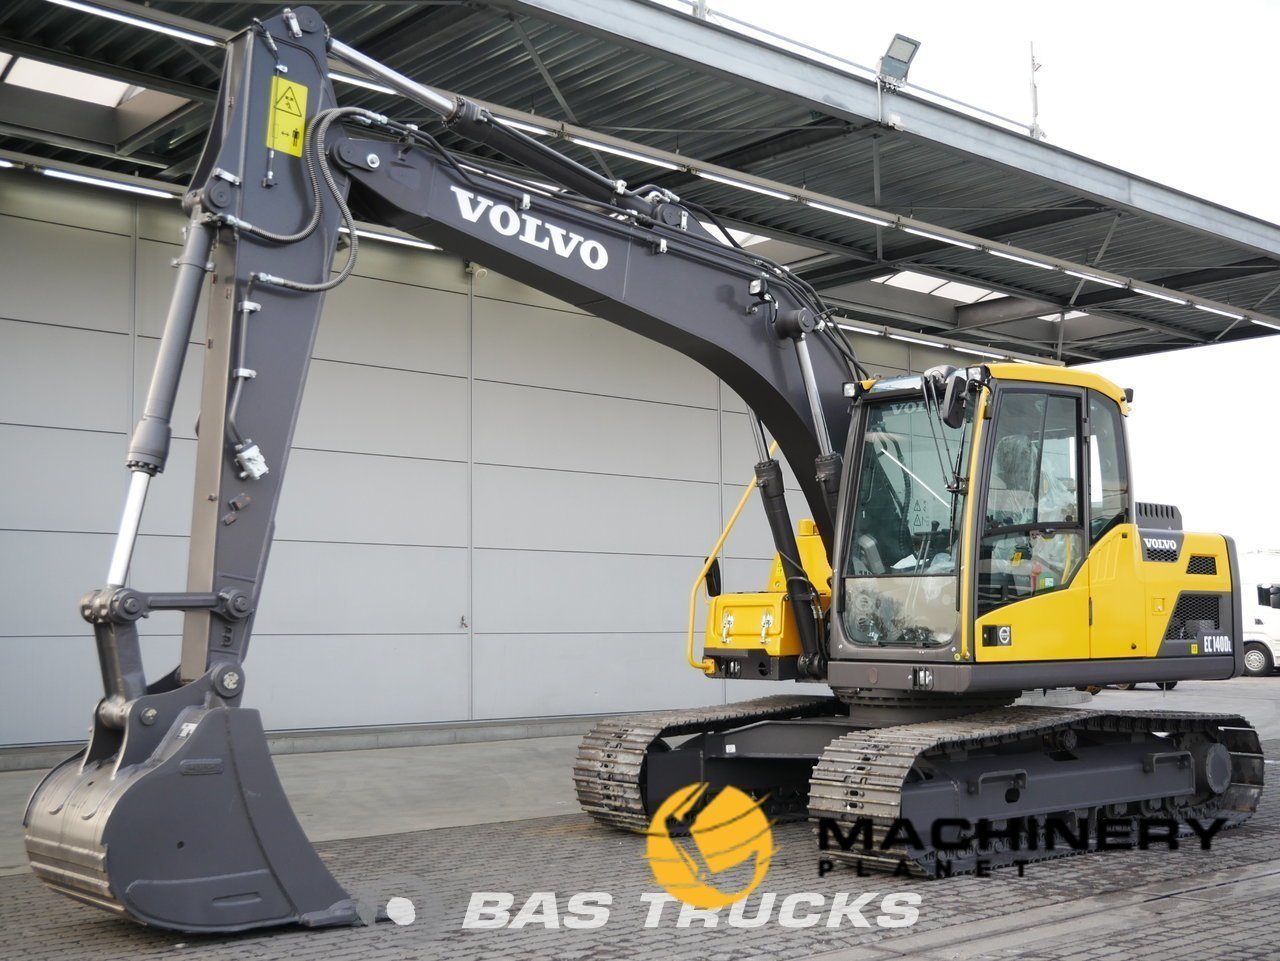 Used-Construction-equipment-Volvo-EC140-DL-Track-2018_141857_1-1554099813463_5ca1ae657120b-1.jpg